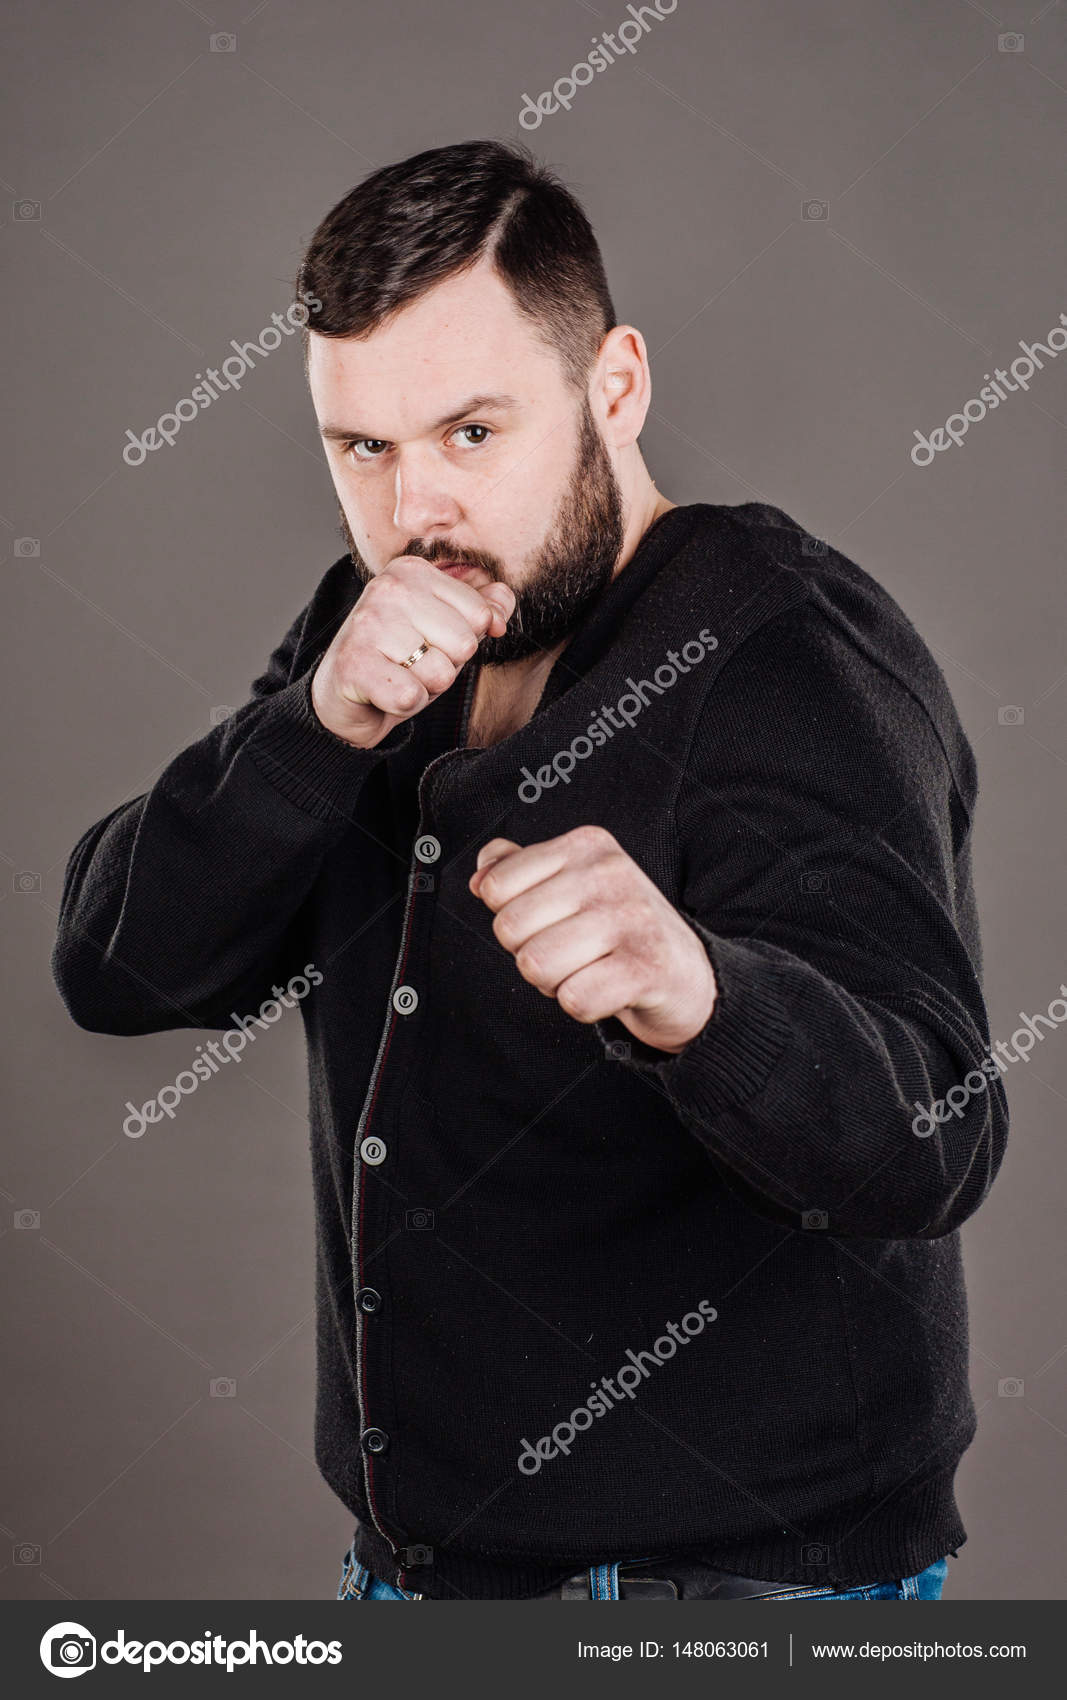 Portrait Of Angry Business Man Fists In Air Negative Emotion Facial Expression Photo By Kaninstudio